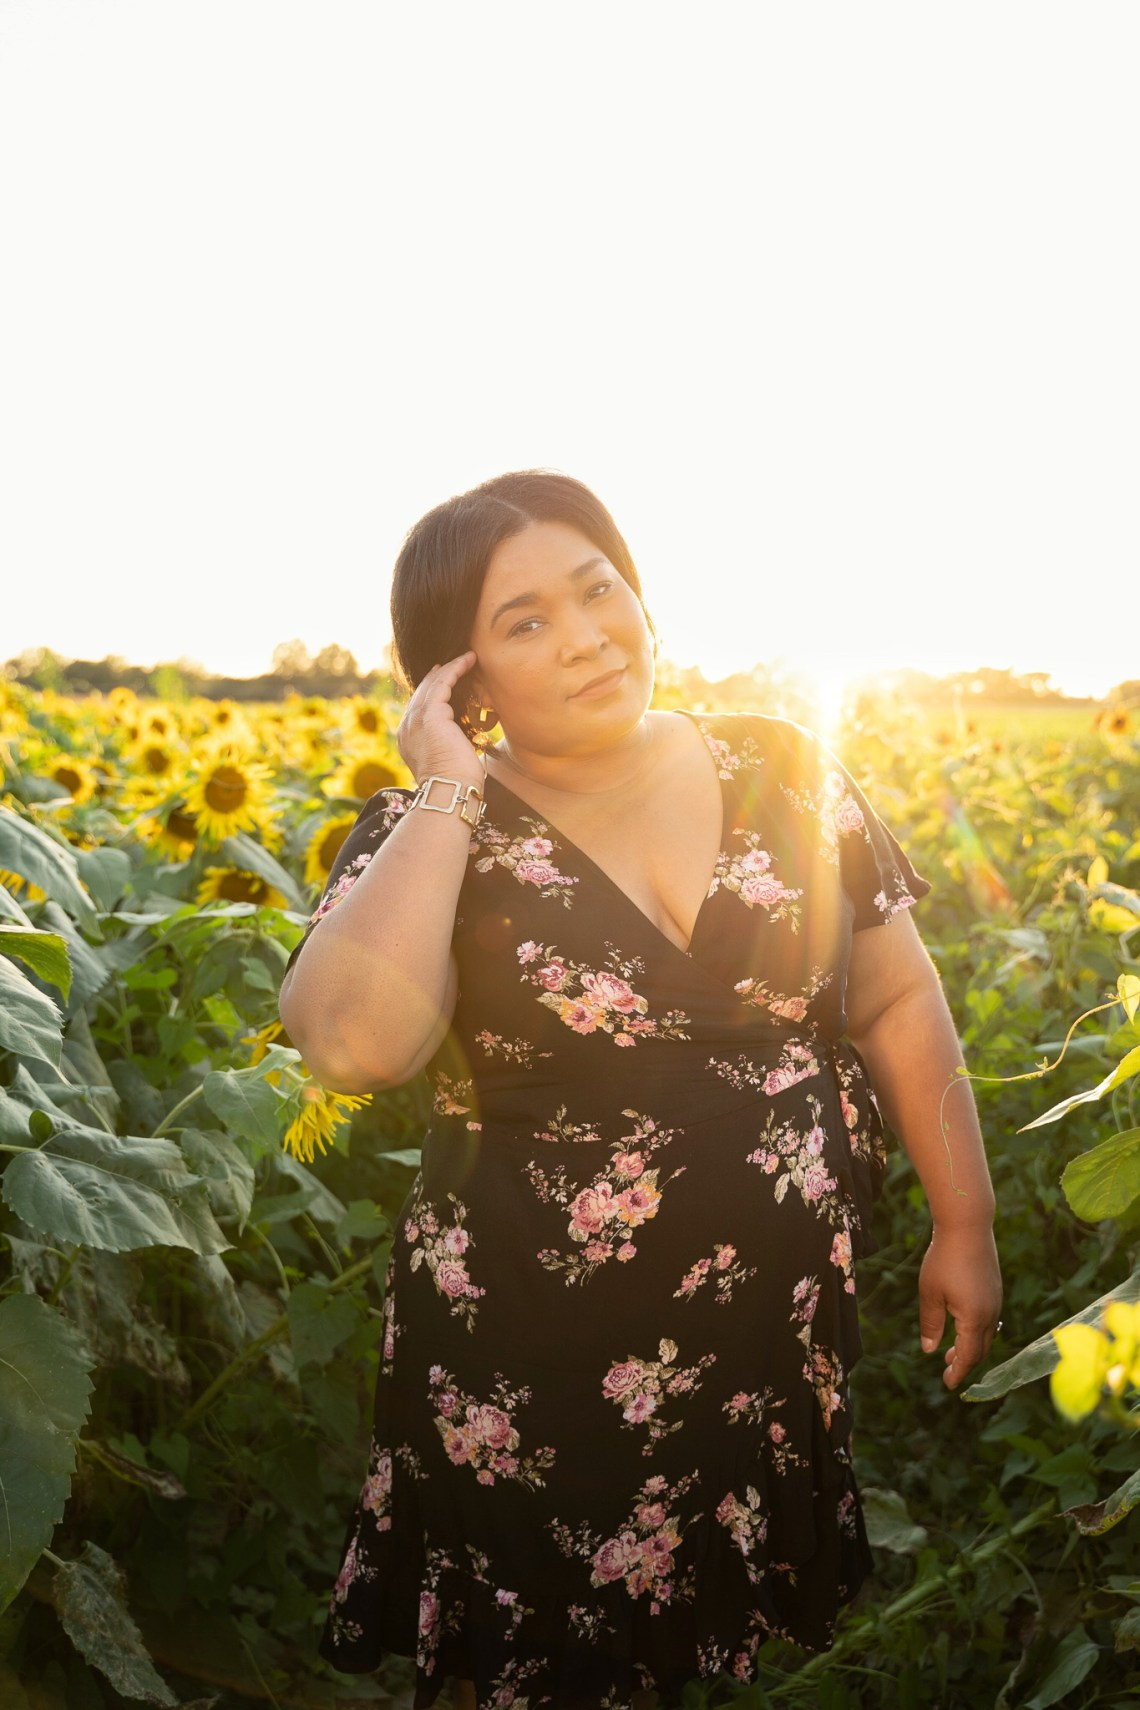 Floral dress sunflower field